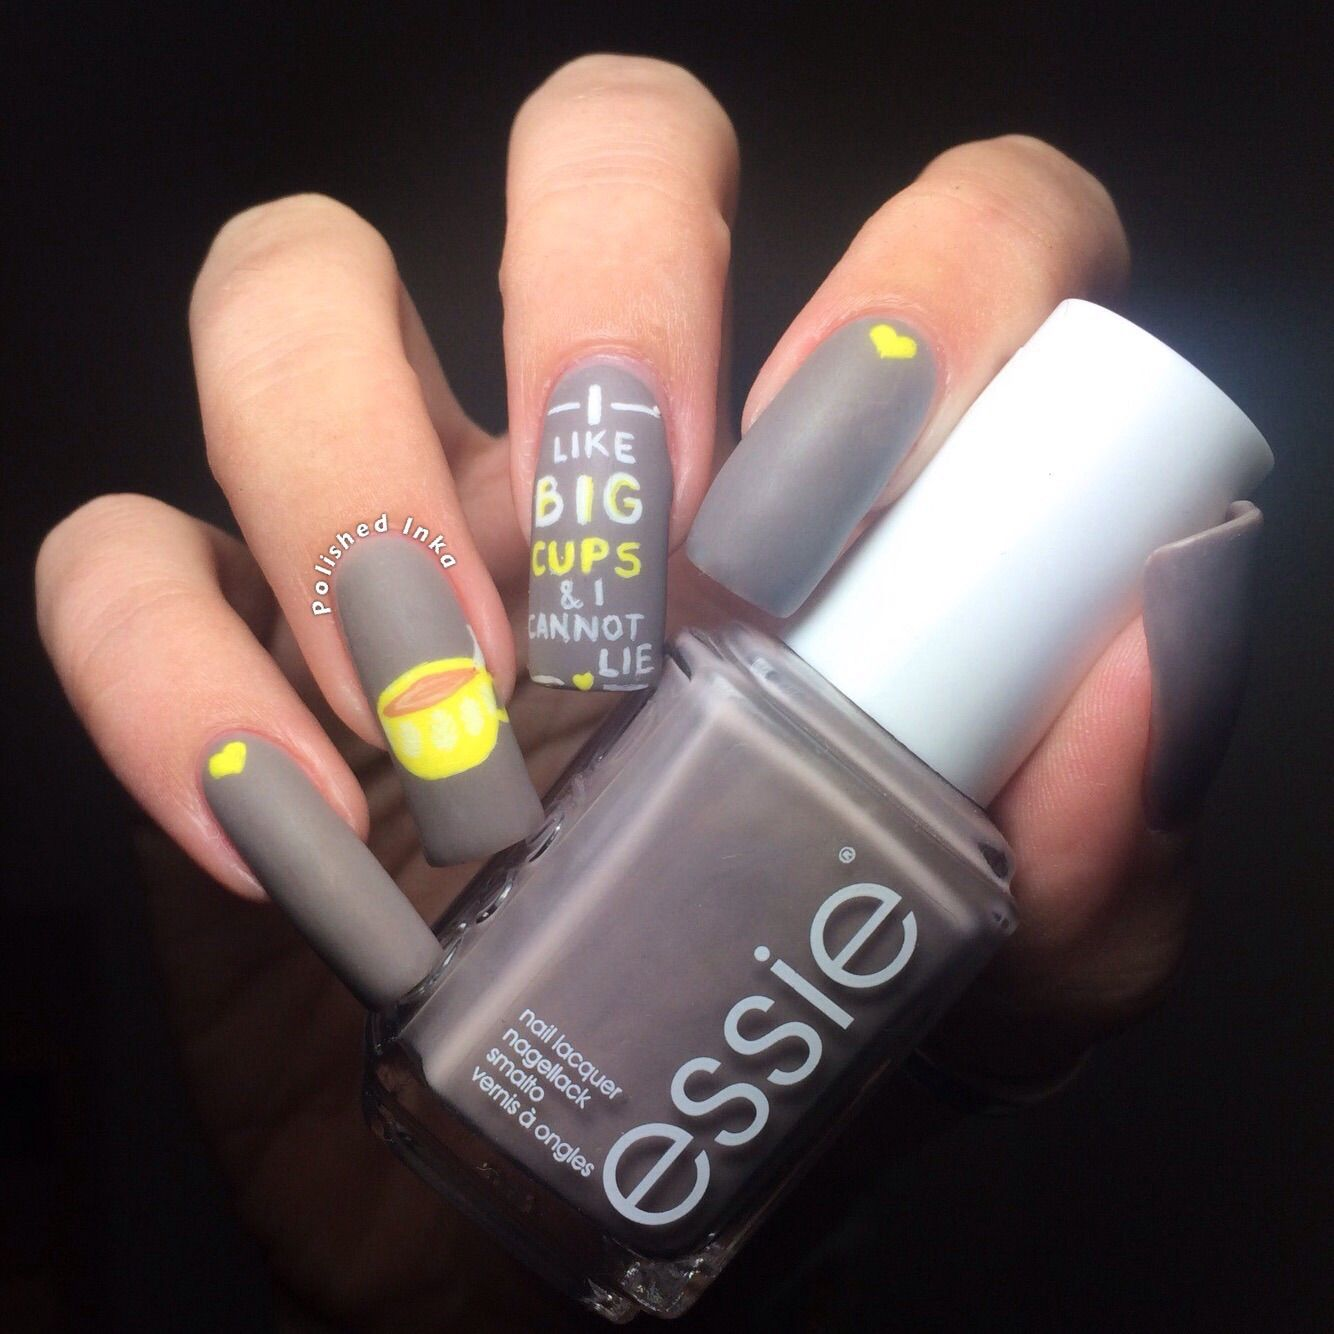 Polished Inka - I Like Big Cups Nail Art